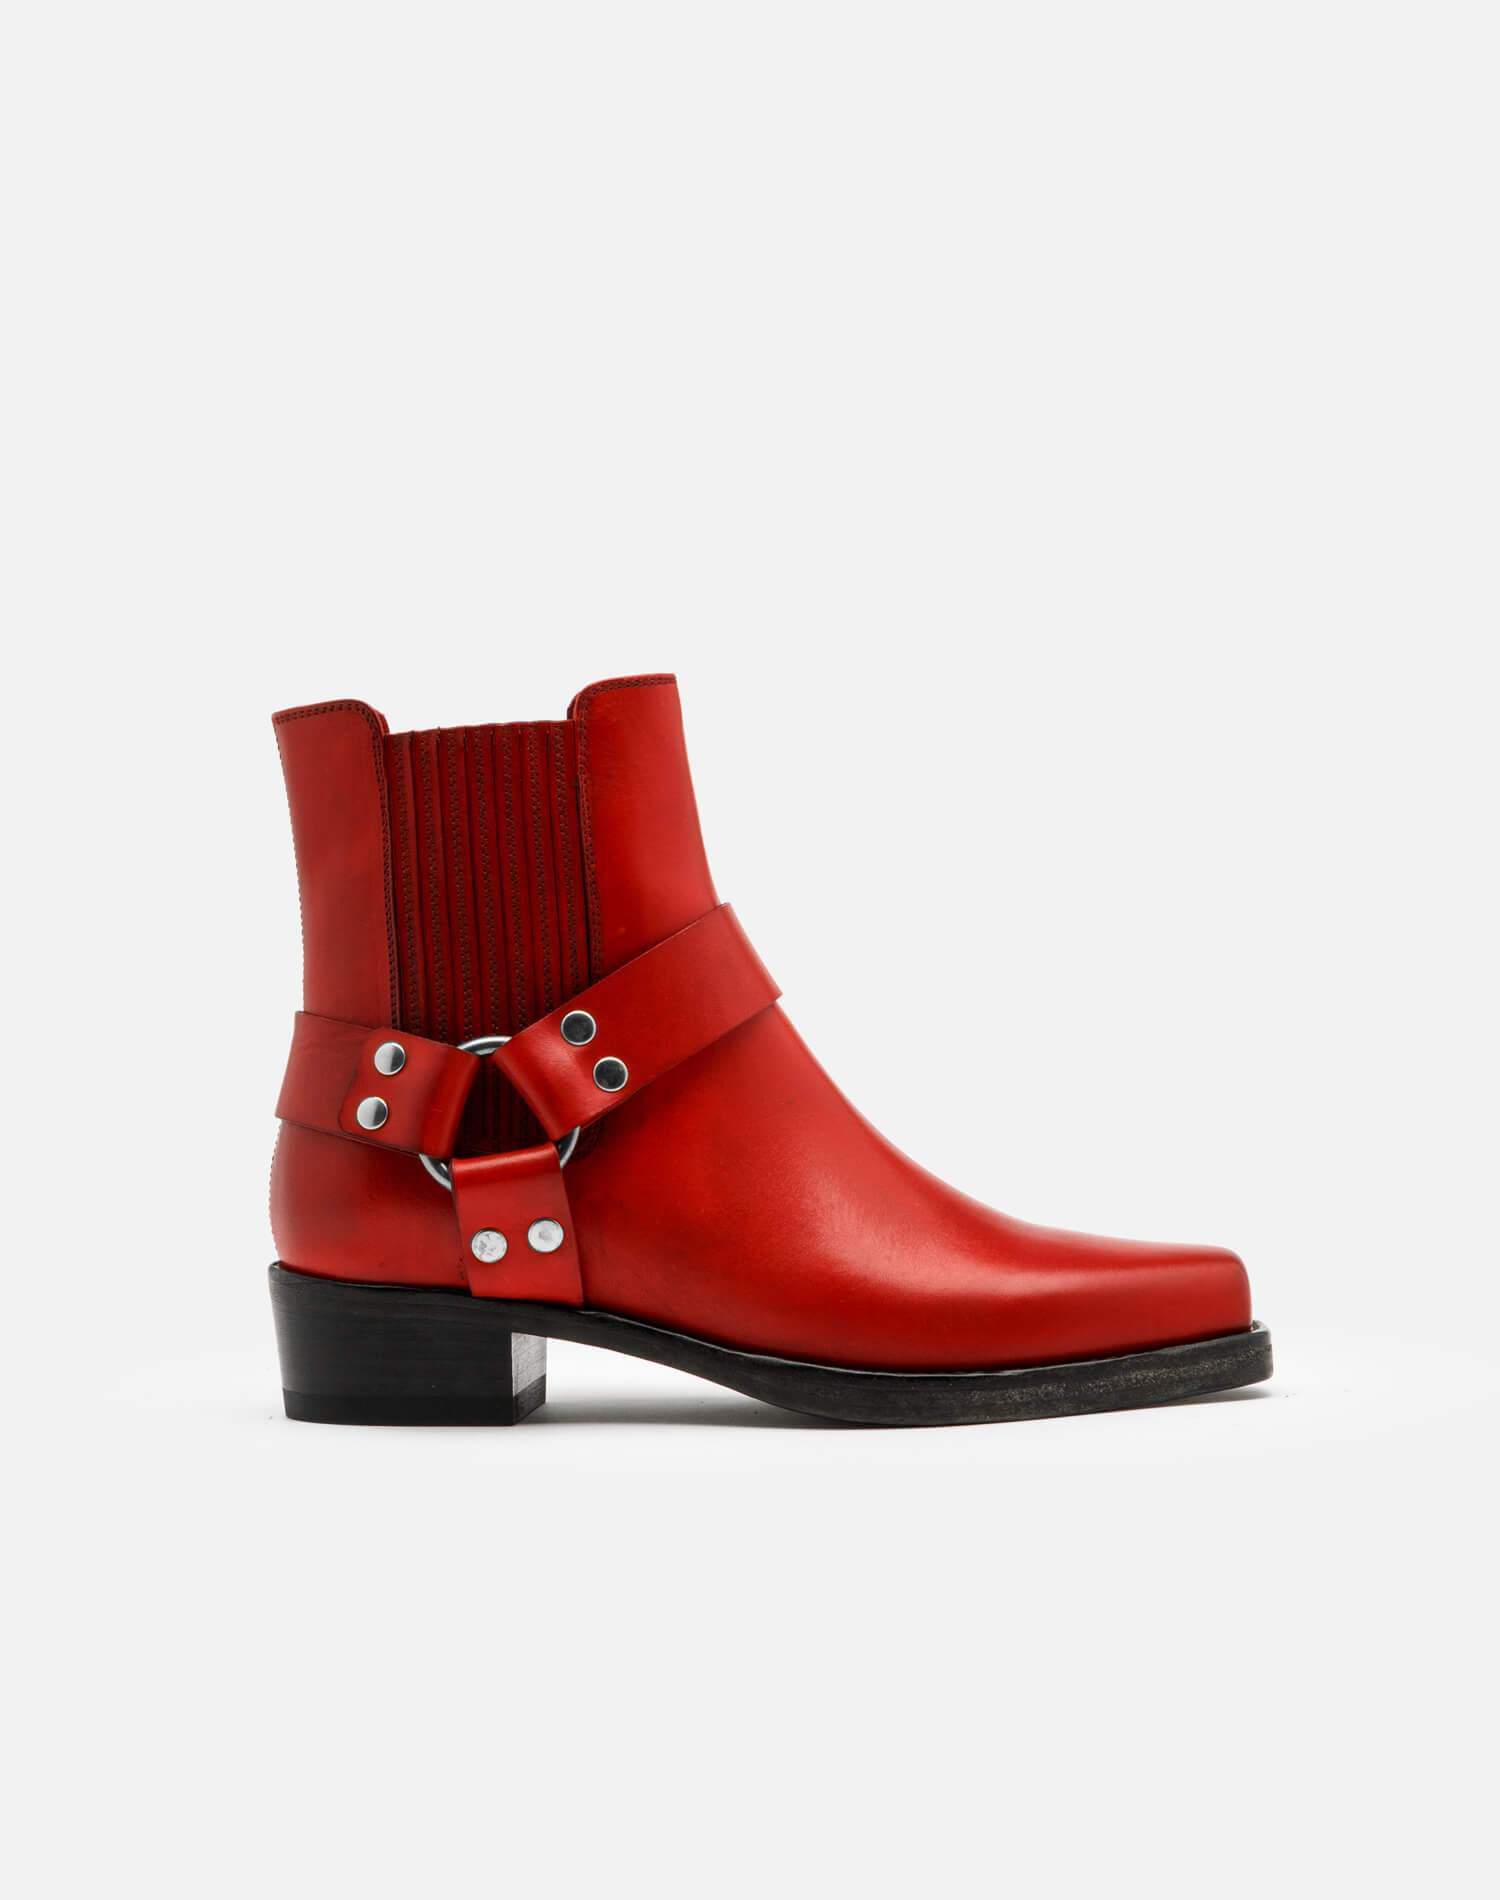 Cavalry Boot - Red Leather